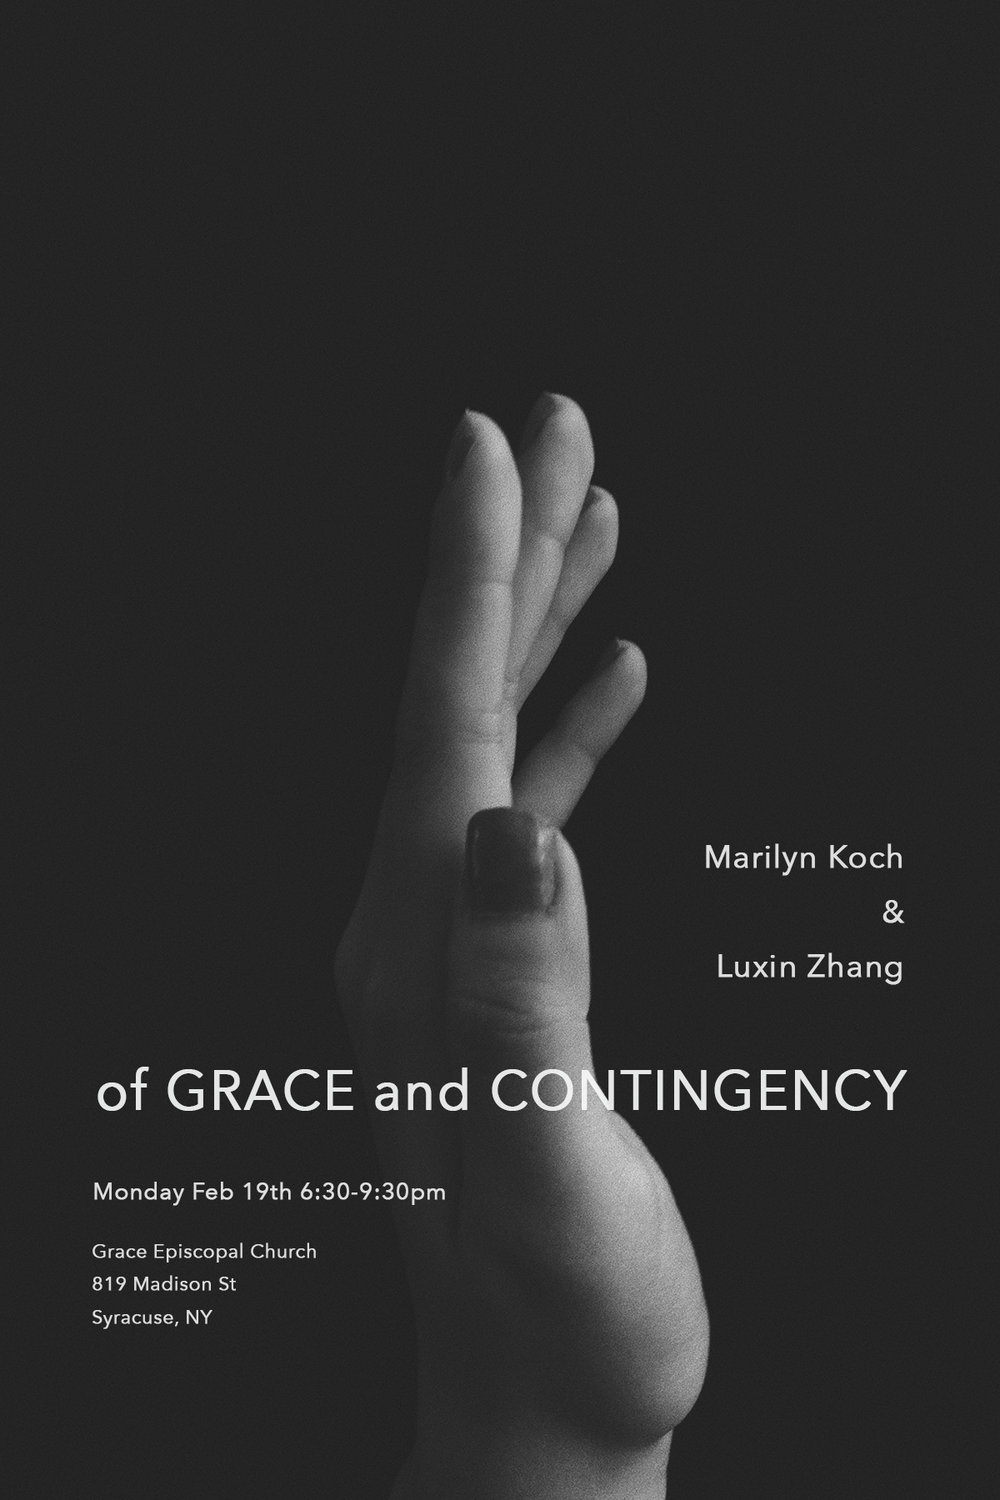 of Grace and CONTINGENCY  2018.02.19  6:30-9:30pm  Grace Episcopal Church, Syracuse,NY